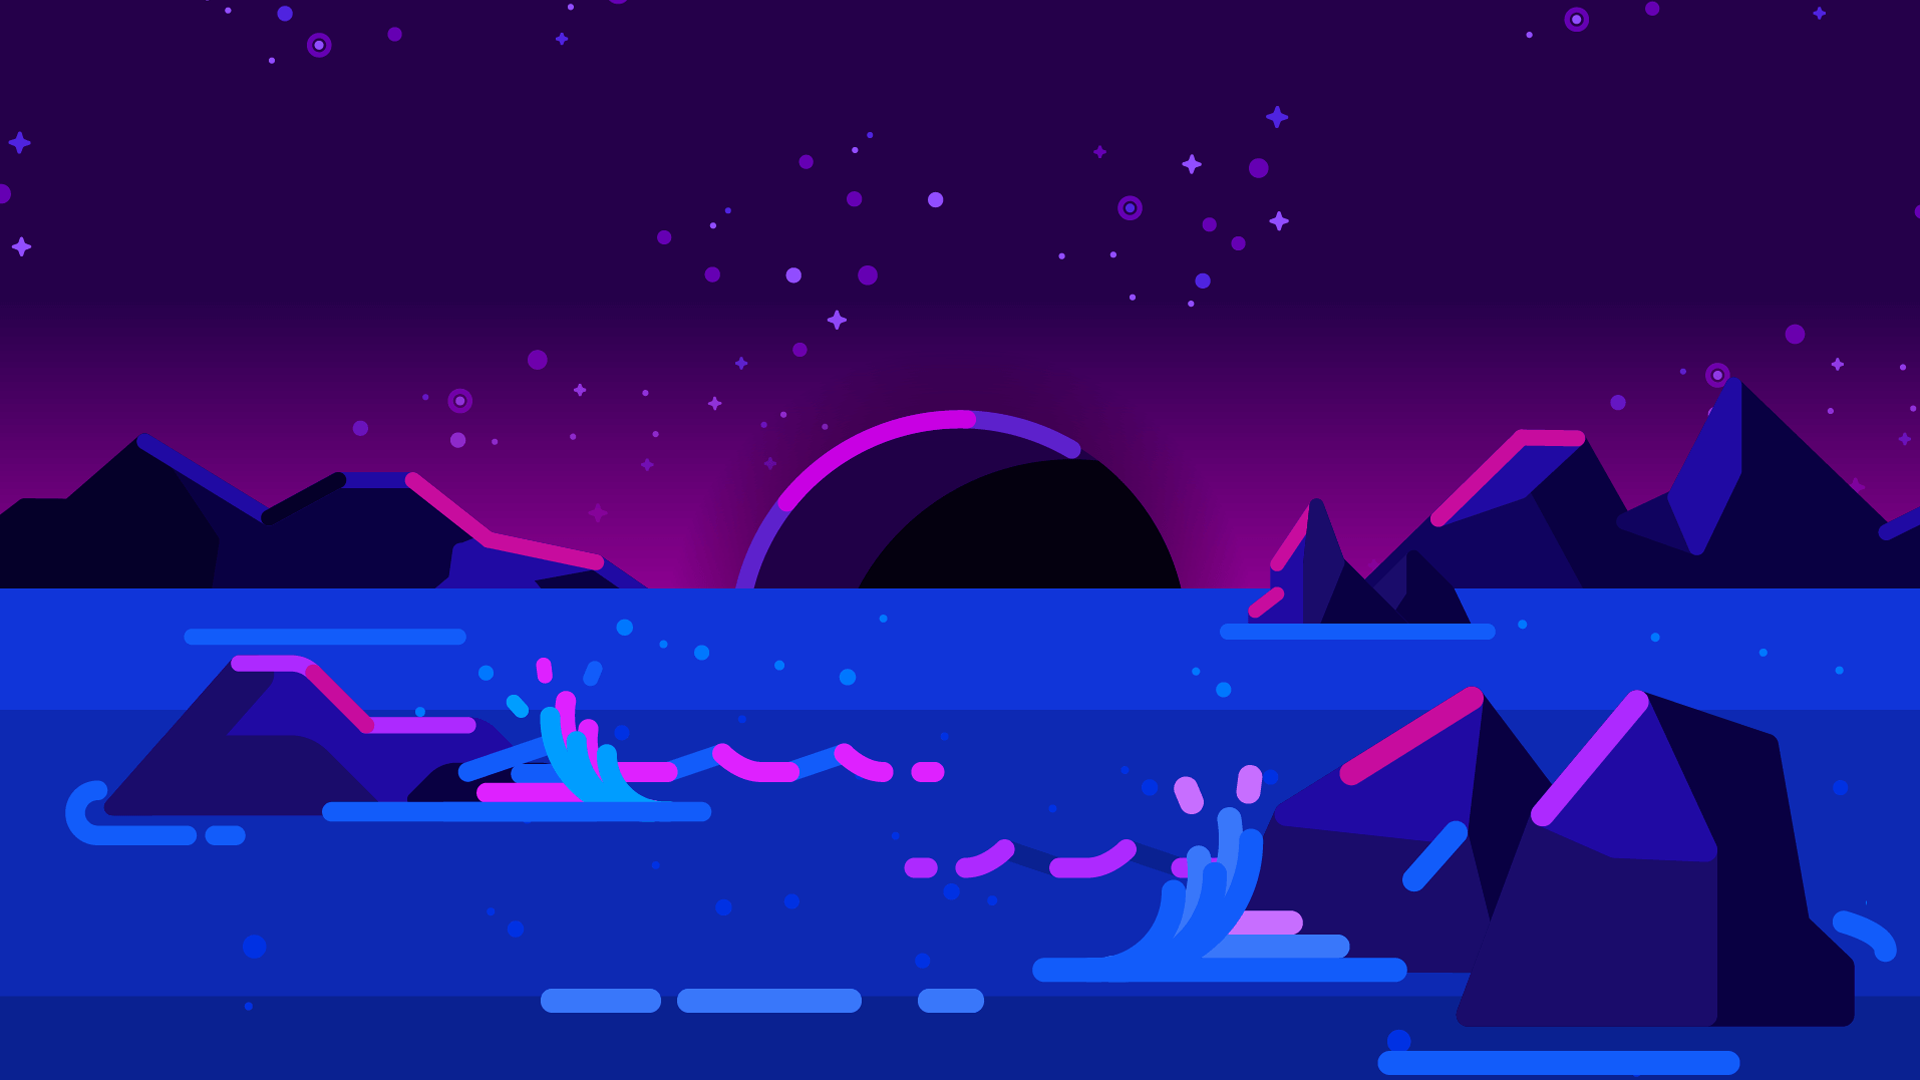 Wallpaper Minimalist Art By Kurzgesagt 1920x1080 In 2020 Desktop Wallpaper Art Vaporwave Wallpaper Computer Wallpaper Desktop Wallpapers